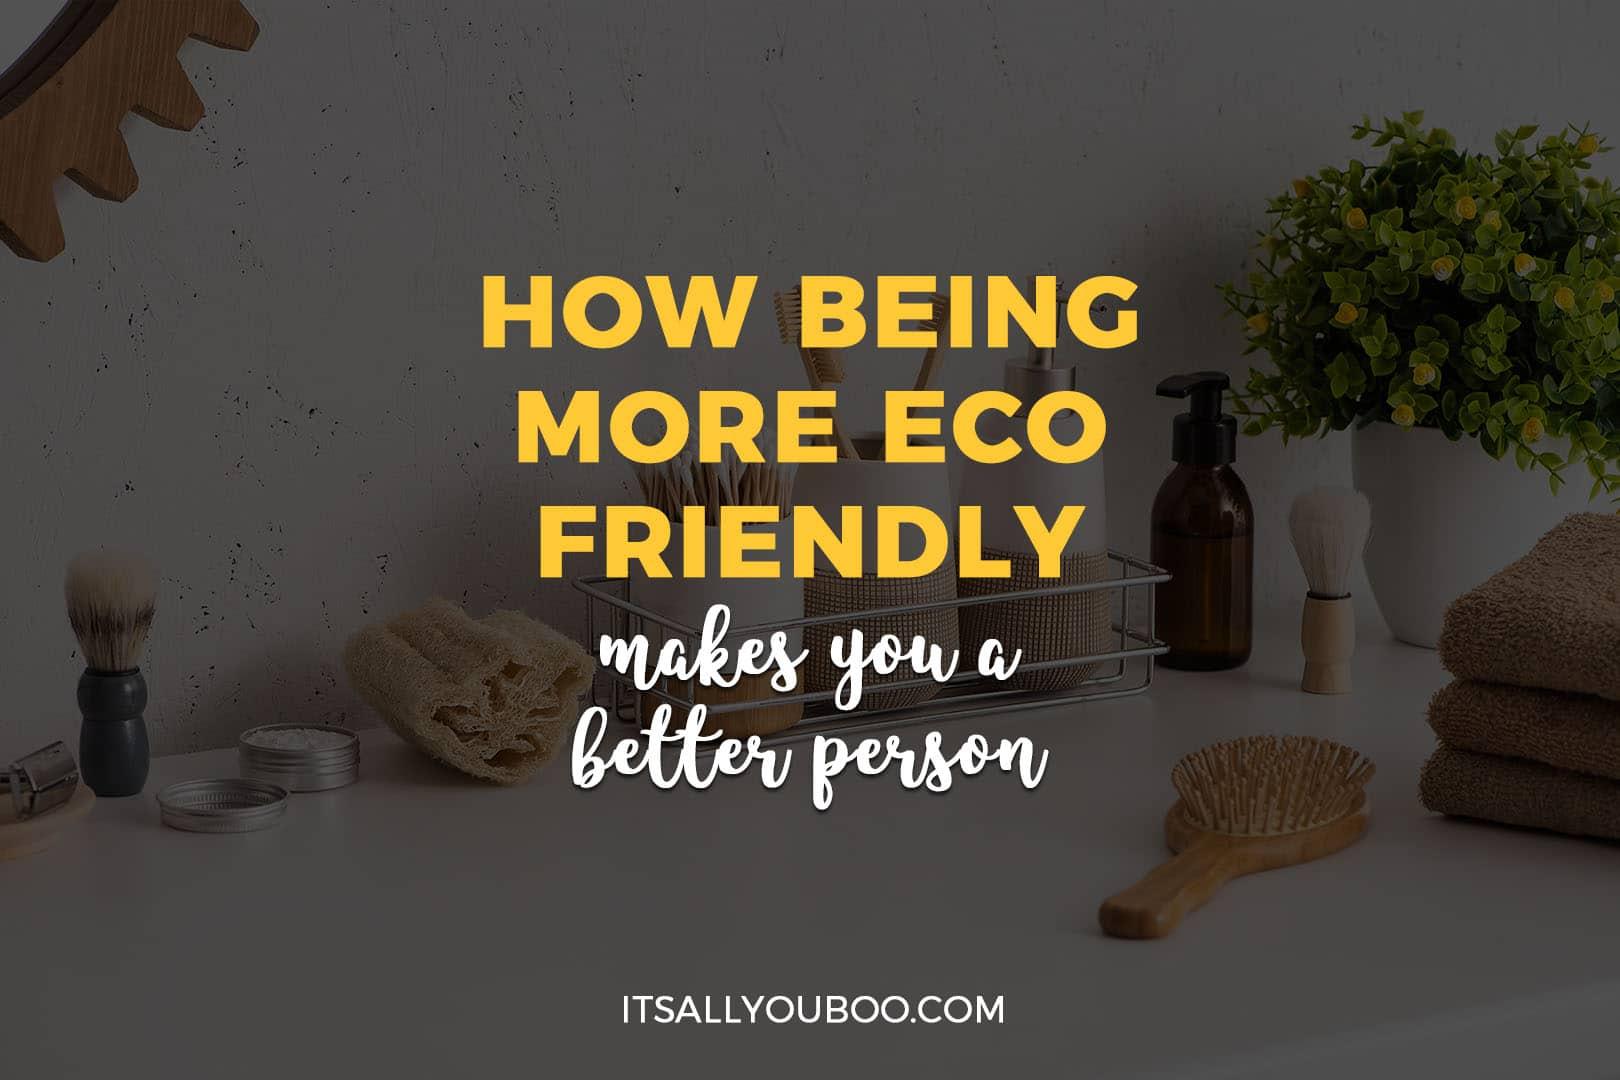 How Being Eco Friendly Makes You a Better Person